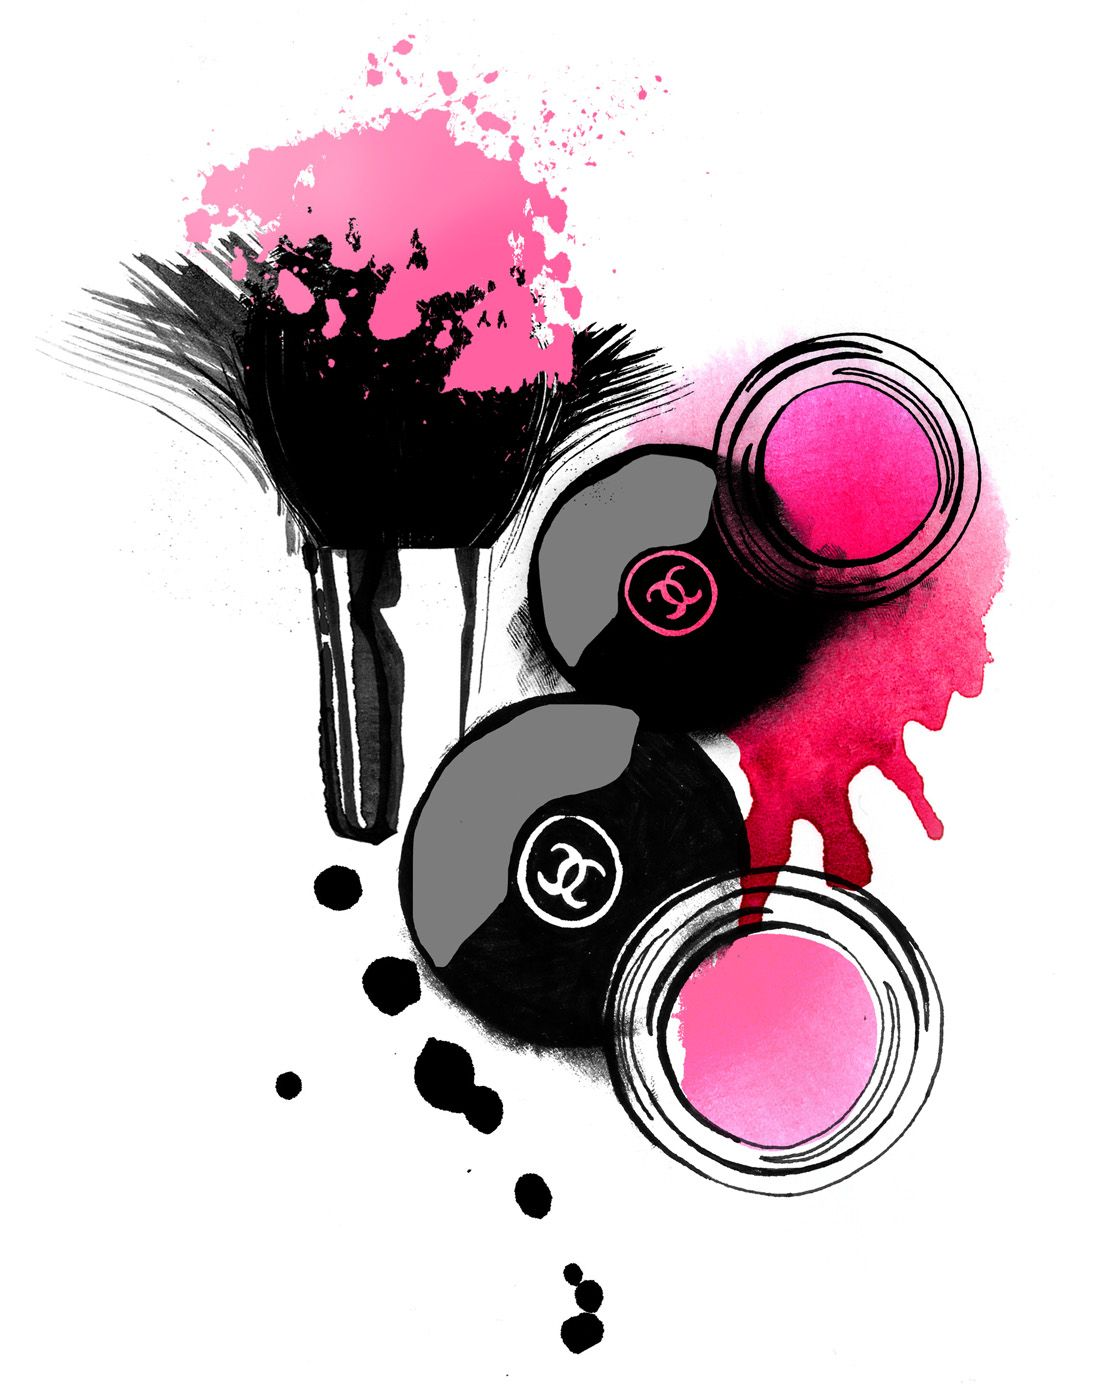 Agentmolly Co Maquillage Illustration Idees D Art Cadre Image